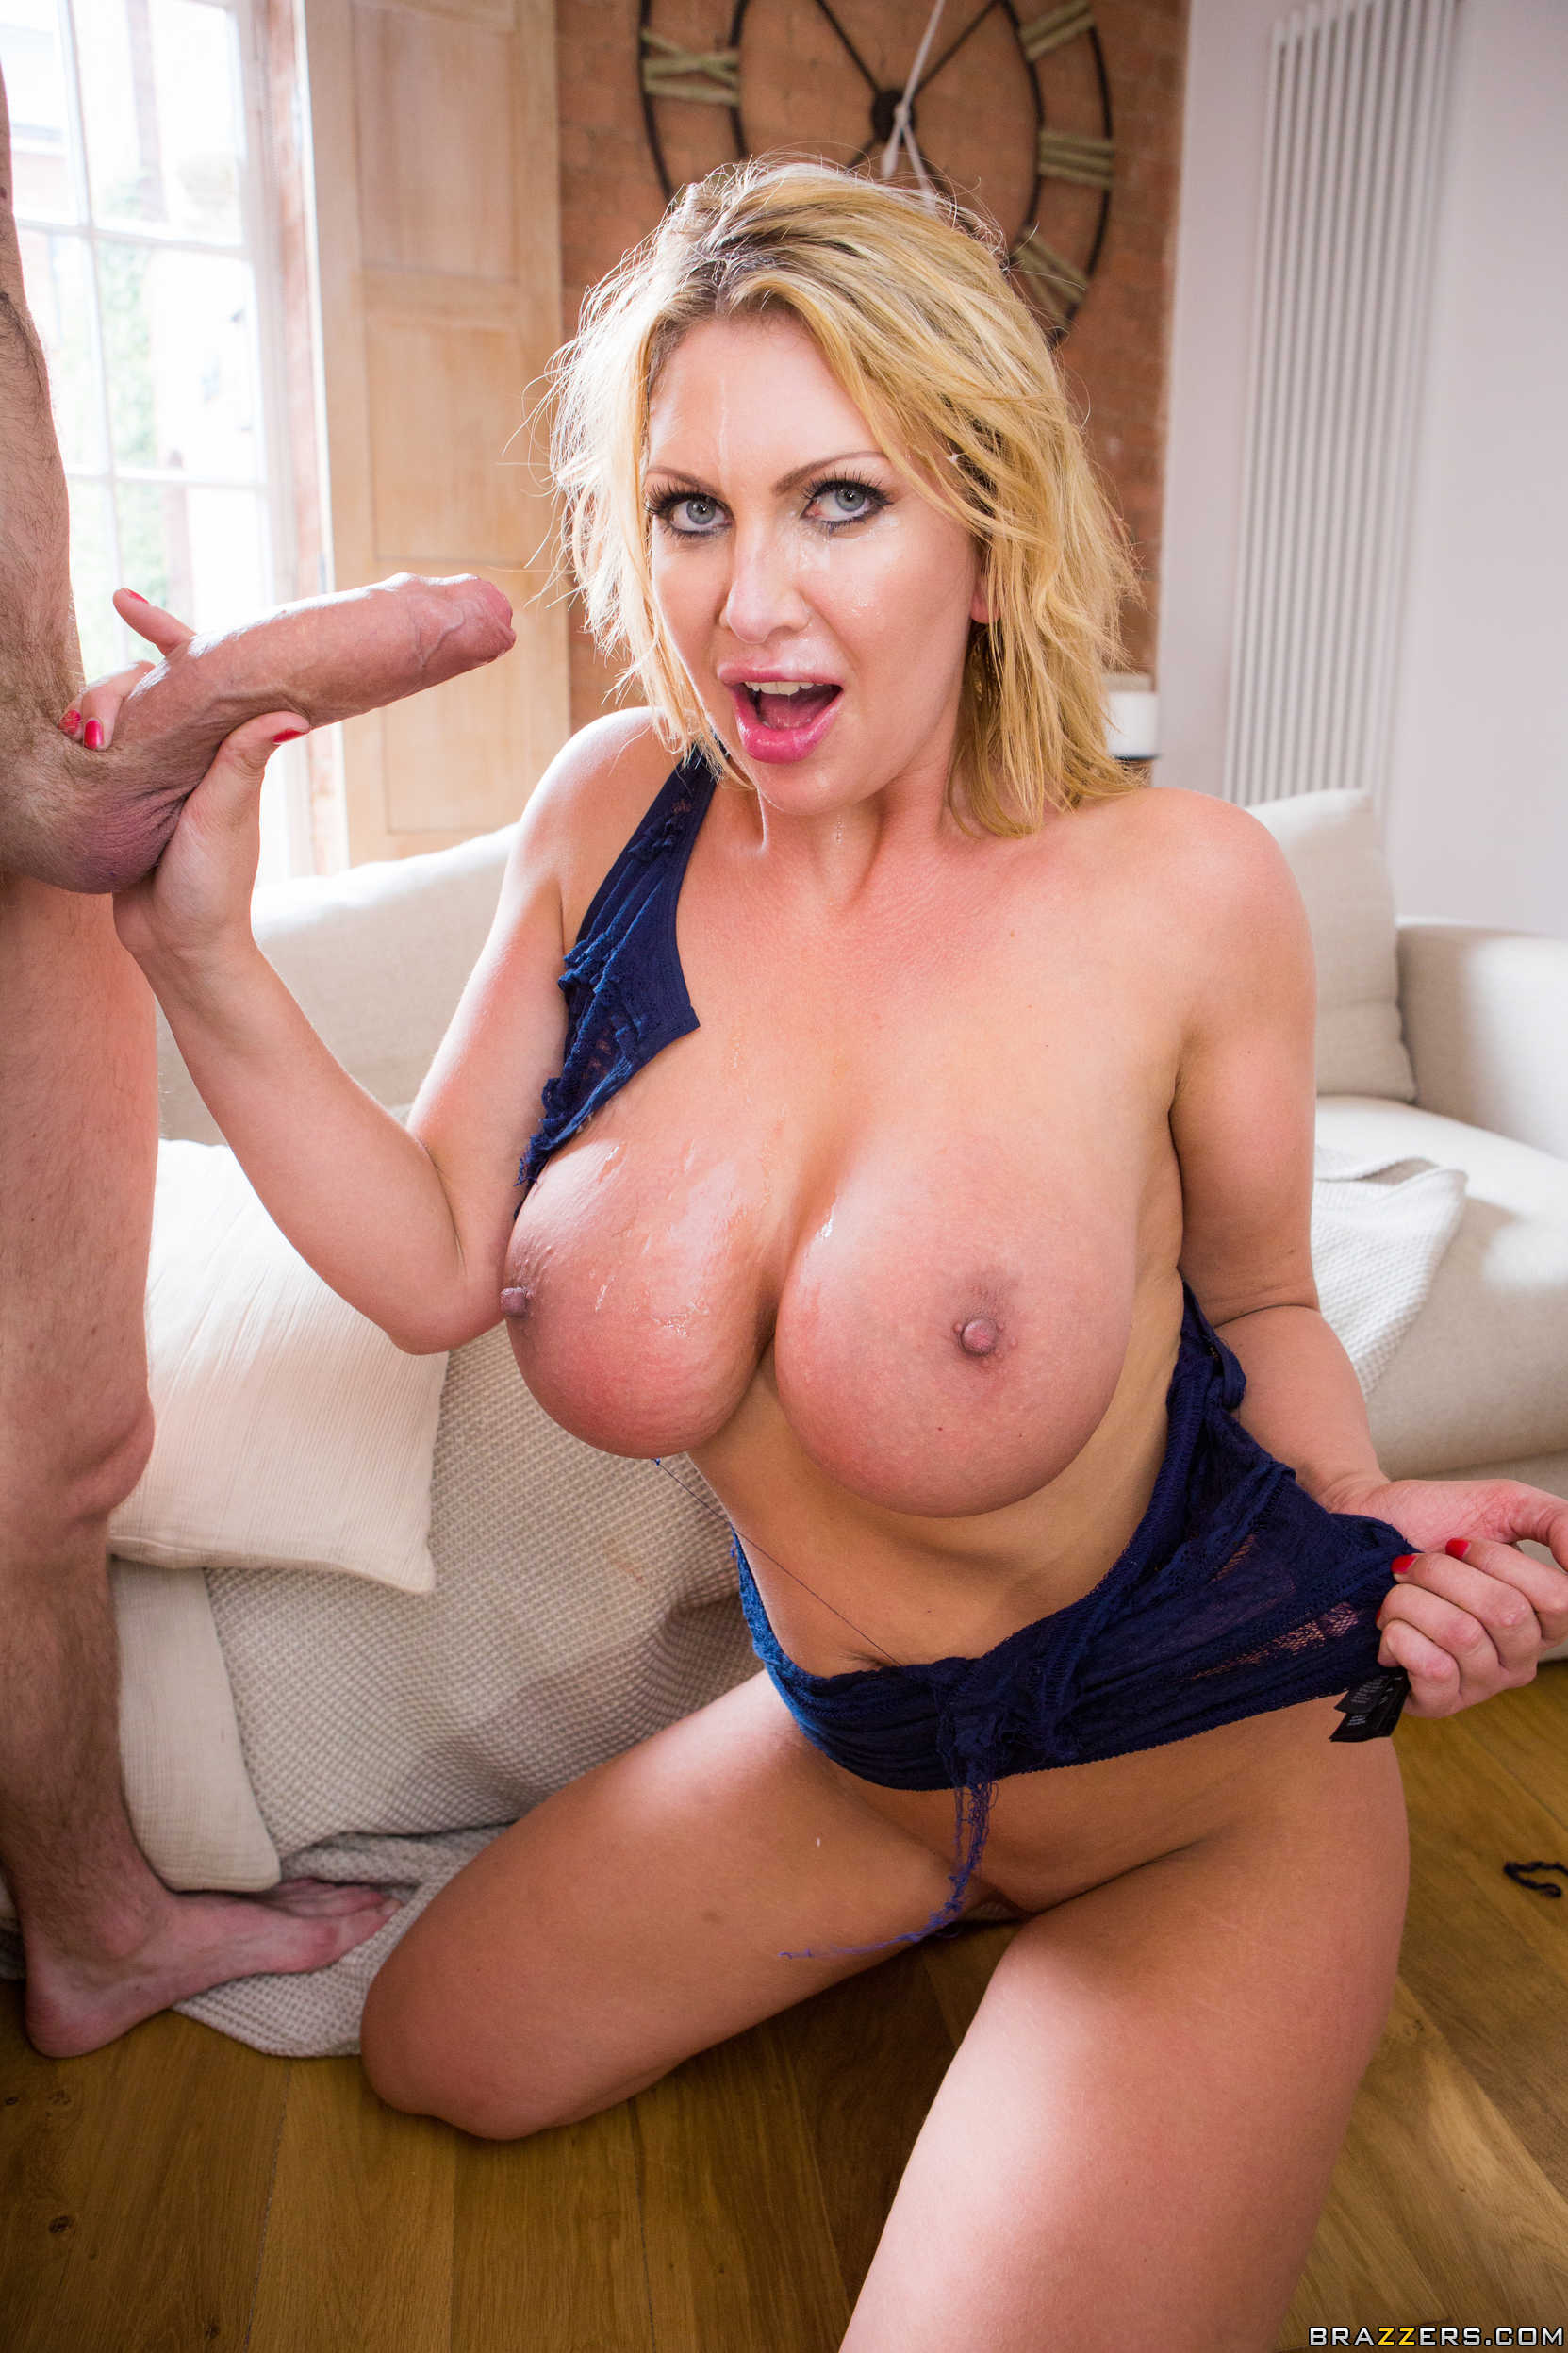 Lucia love has her ass fucked on a first date 2